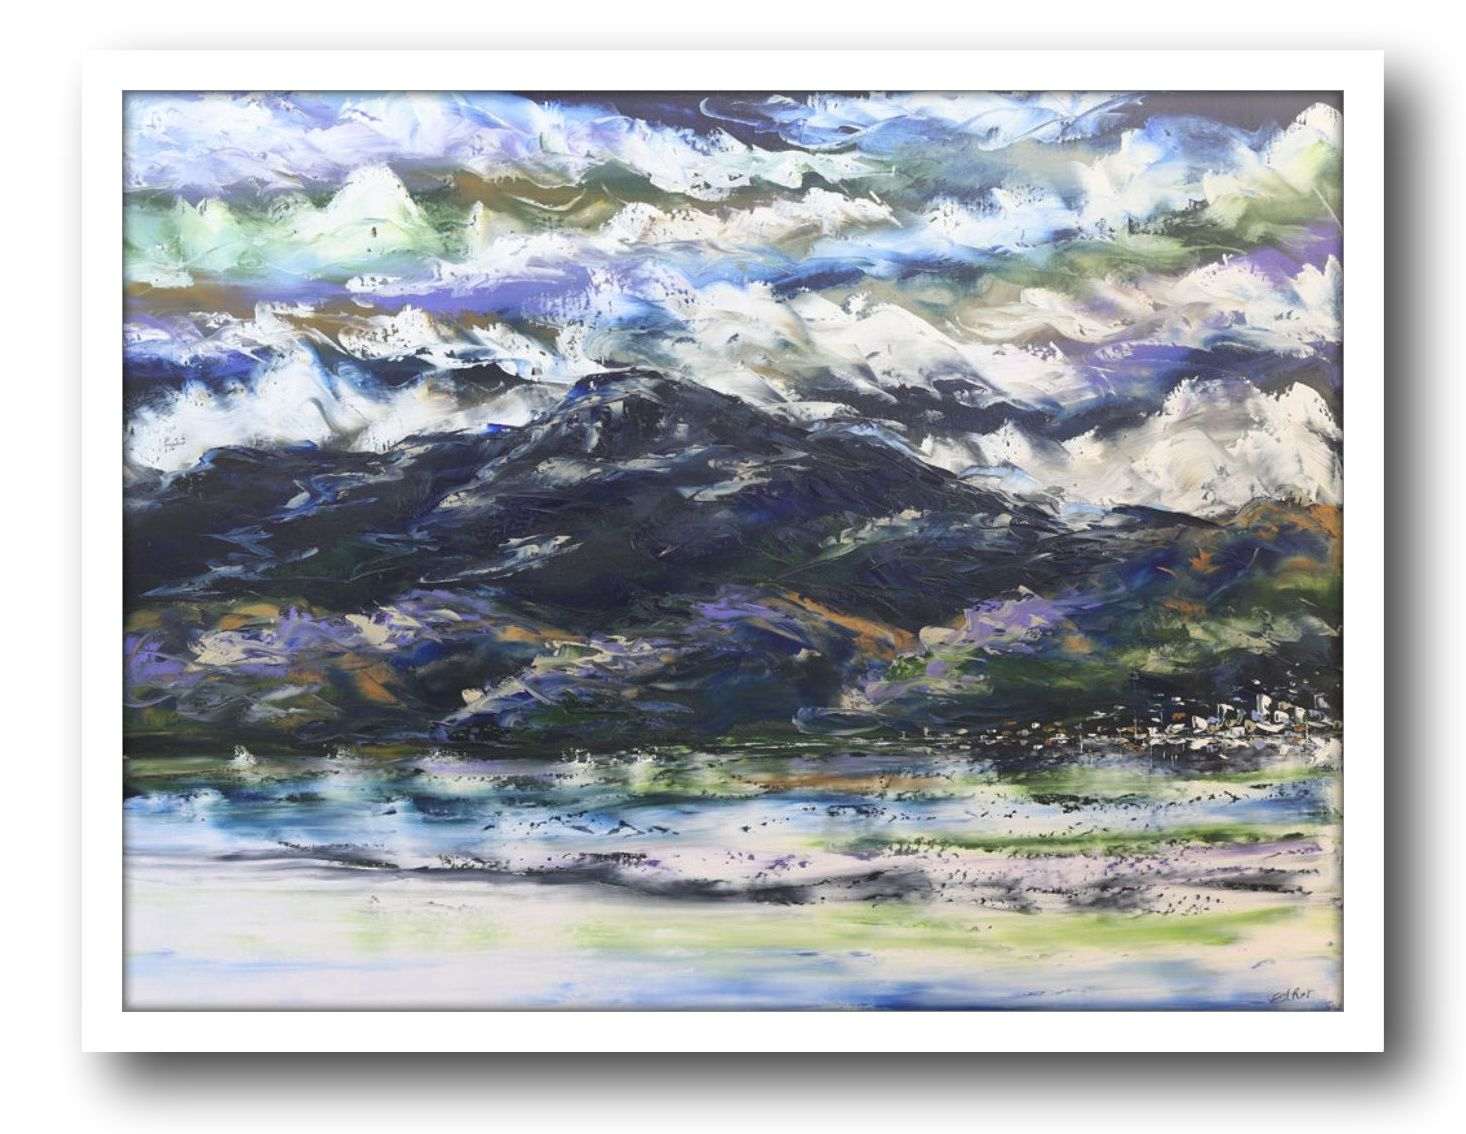 Esther Shohet Painting ~ 'A Storm is Coming' - Gallery Salamanca Hobart Tasmania